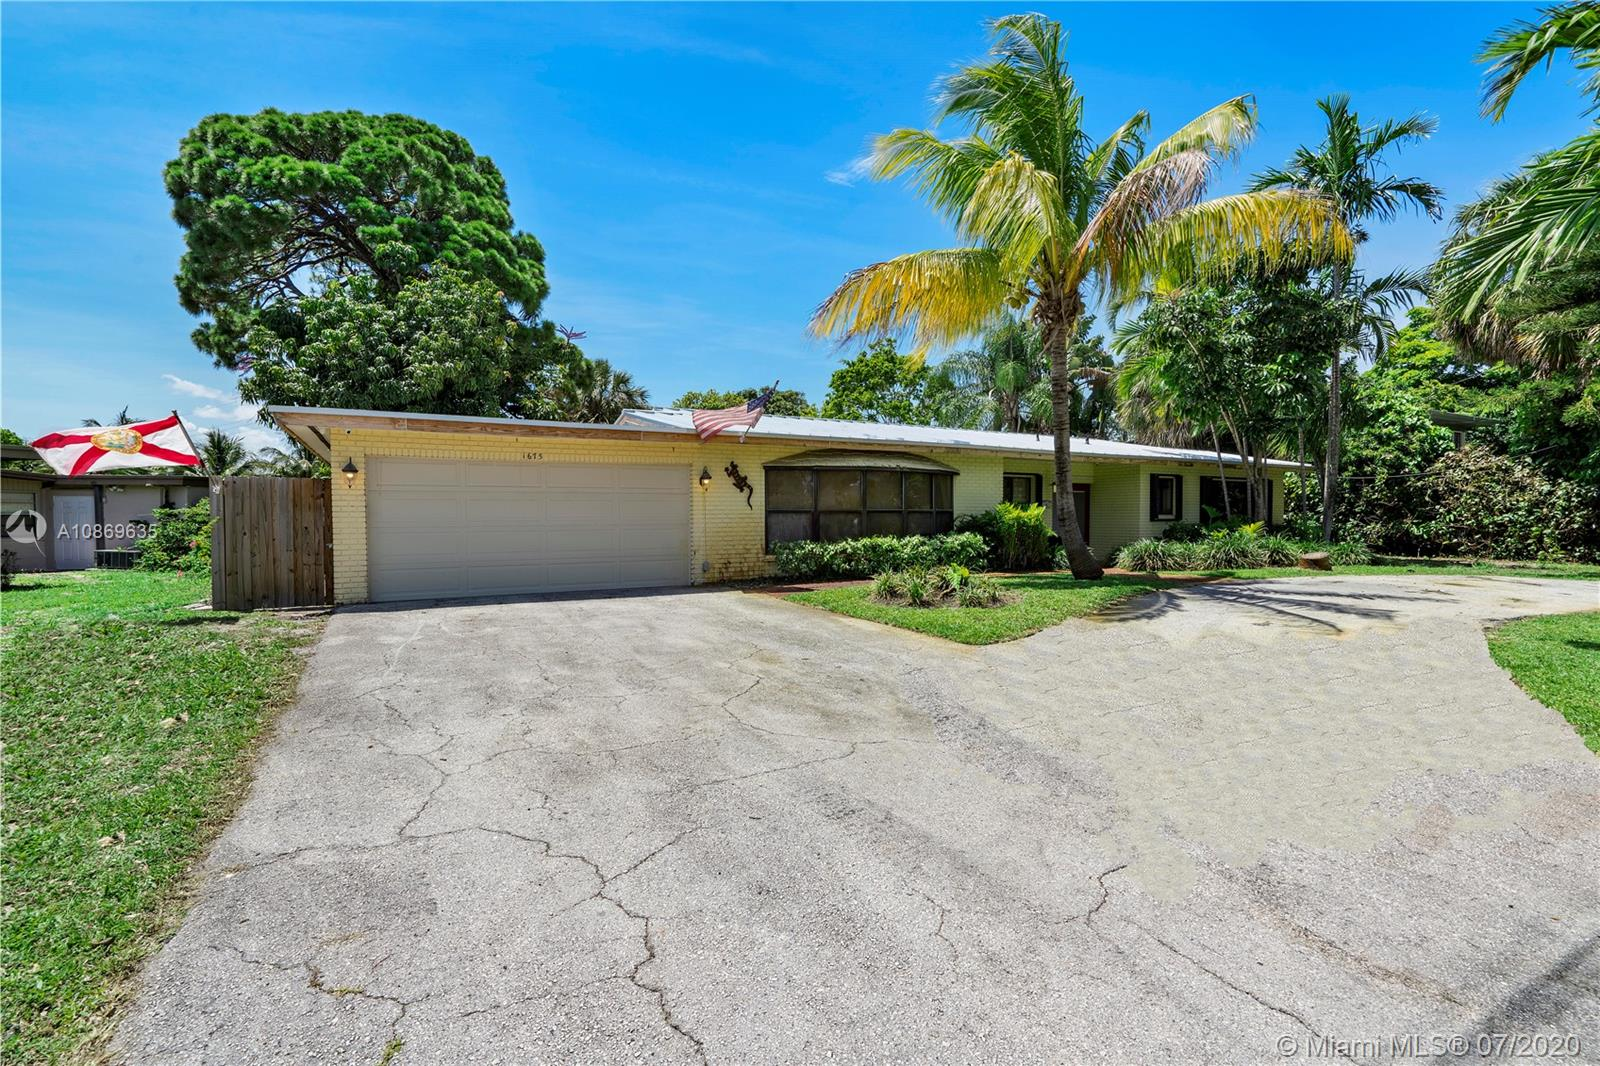 Wow!Large 3 Bed, 2 Bath Pool Home With 2 Car Garage Located Close To The Beach In Oakland Park On Oversized Lot. NEW $50K Metal Roof (2019). Large Open Kitchen With Lots Of White Cabinets, Pantry, Recessed Lights, & Breakfast Area. Home Has Living Room, Dining Room, Family Room + Wet Bar W/Fridge For Entertaining. Tile Flooring Throughout Common Areas. Master Suite Features Walk-In Closet/ 2nd Closet, Upgraded Lighting/Ceiling Fan, Laminated Wood Flooring & Natural Lighting. Master Bath Has Wood Vanity, Upgraded Tub/Shower. 2nd Bath Features Large Vanity, Granite Countertop, & Shower. Upgraded Plumbing + Electric. Large Fenced Backyard Has Patio, Saline Pool W/New Pump, Lavish Landscaping, & Shed. Camera & DVR System Stays. Hurricane Garage Door. Accordion Shutters. NO HOA !Must See!